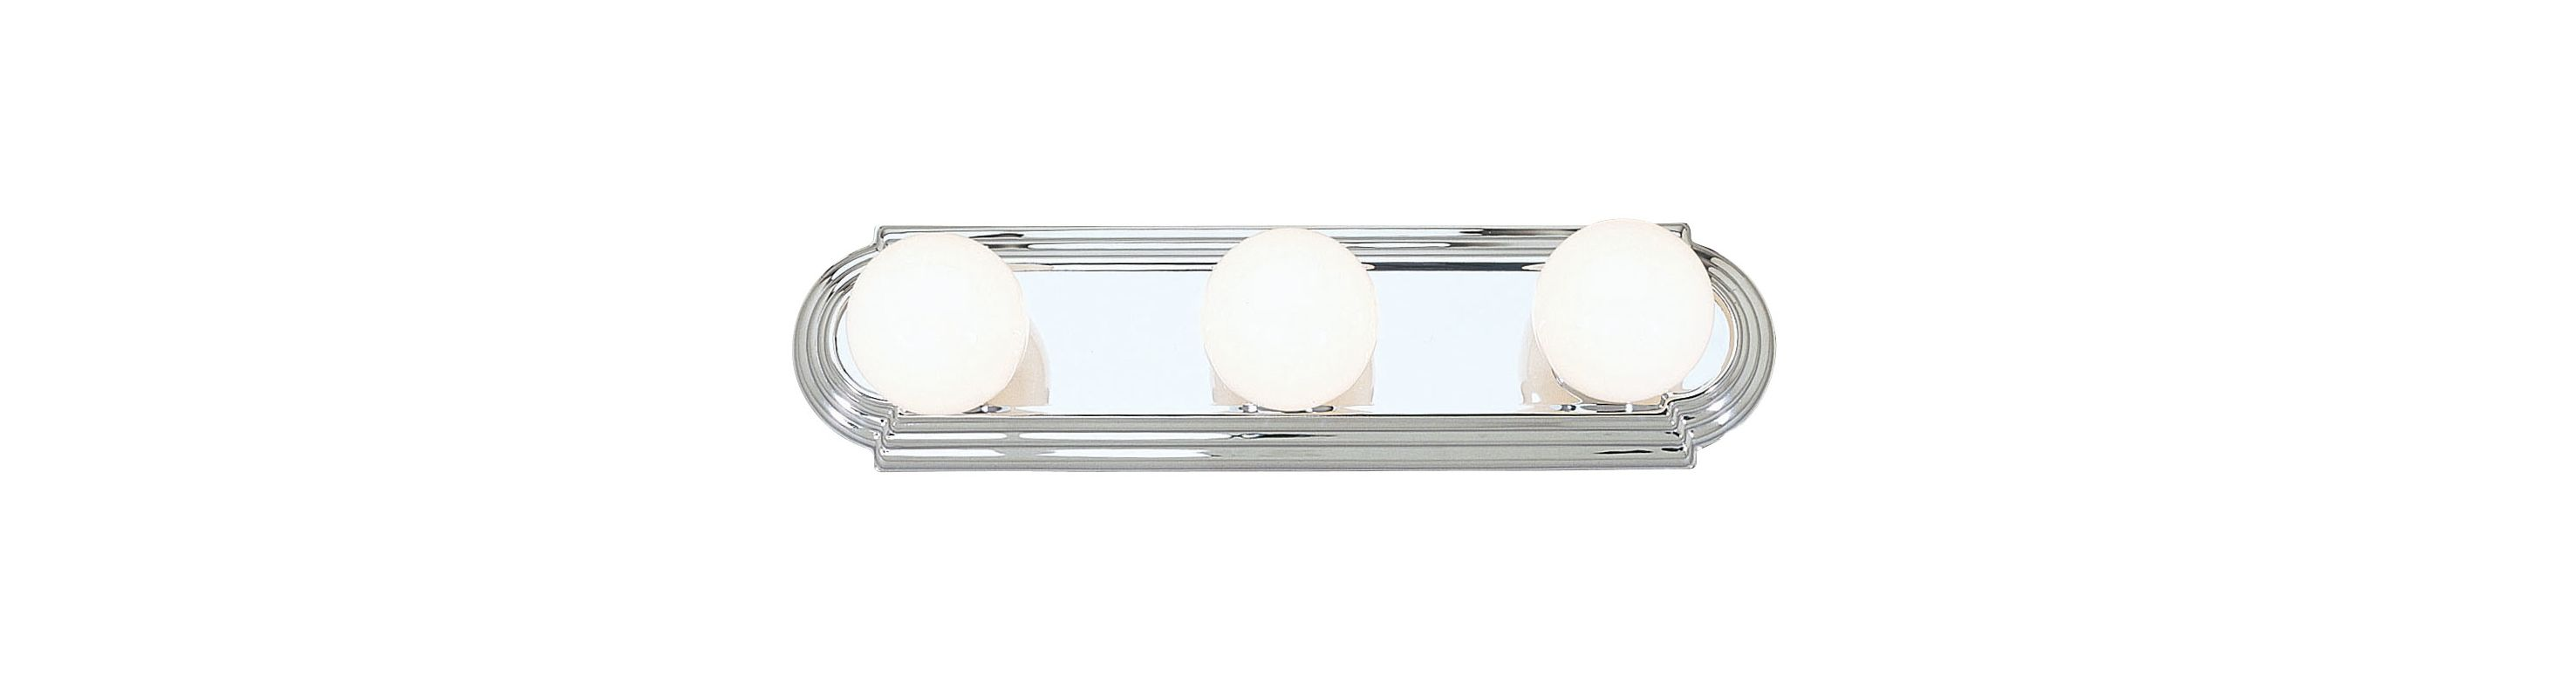 Livex Lighting 1143 Bath Basics 3 Light Bathroom Vanity Strip Chrome